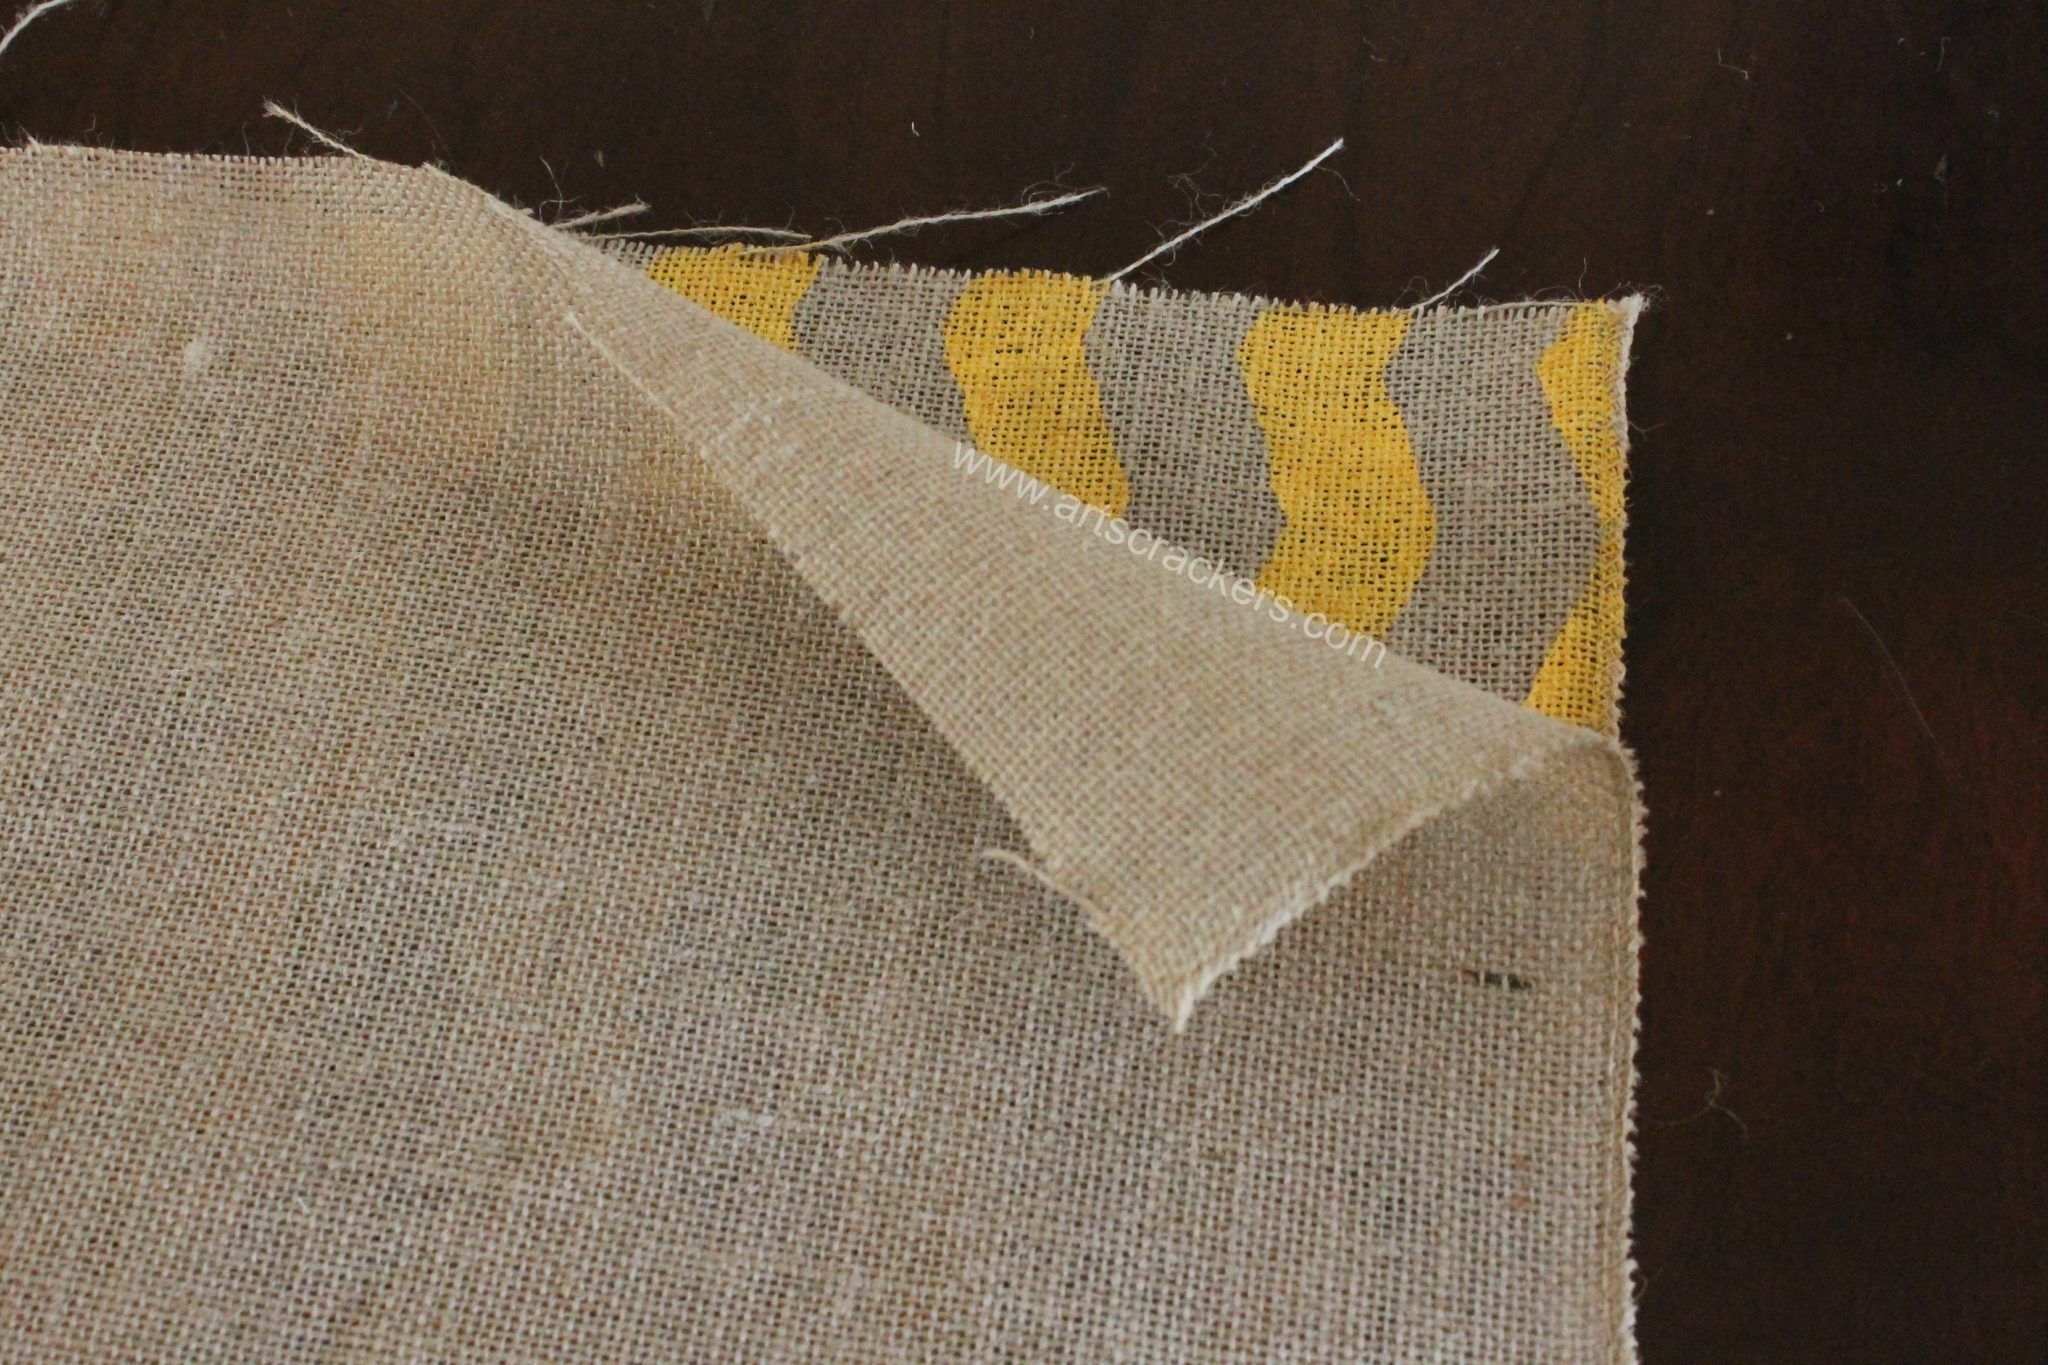 Sewing Burlap Pillows Step 1 Inside Out